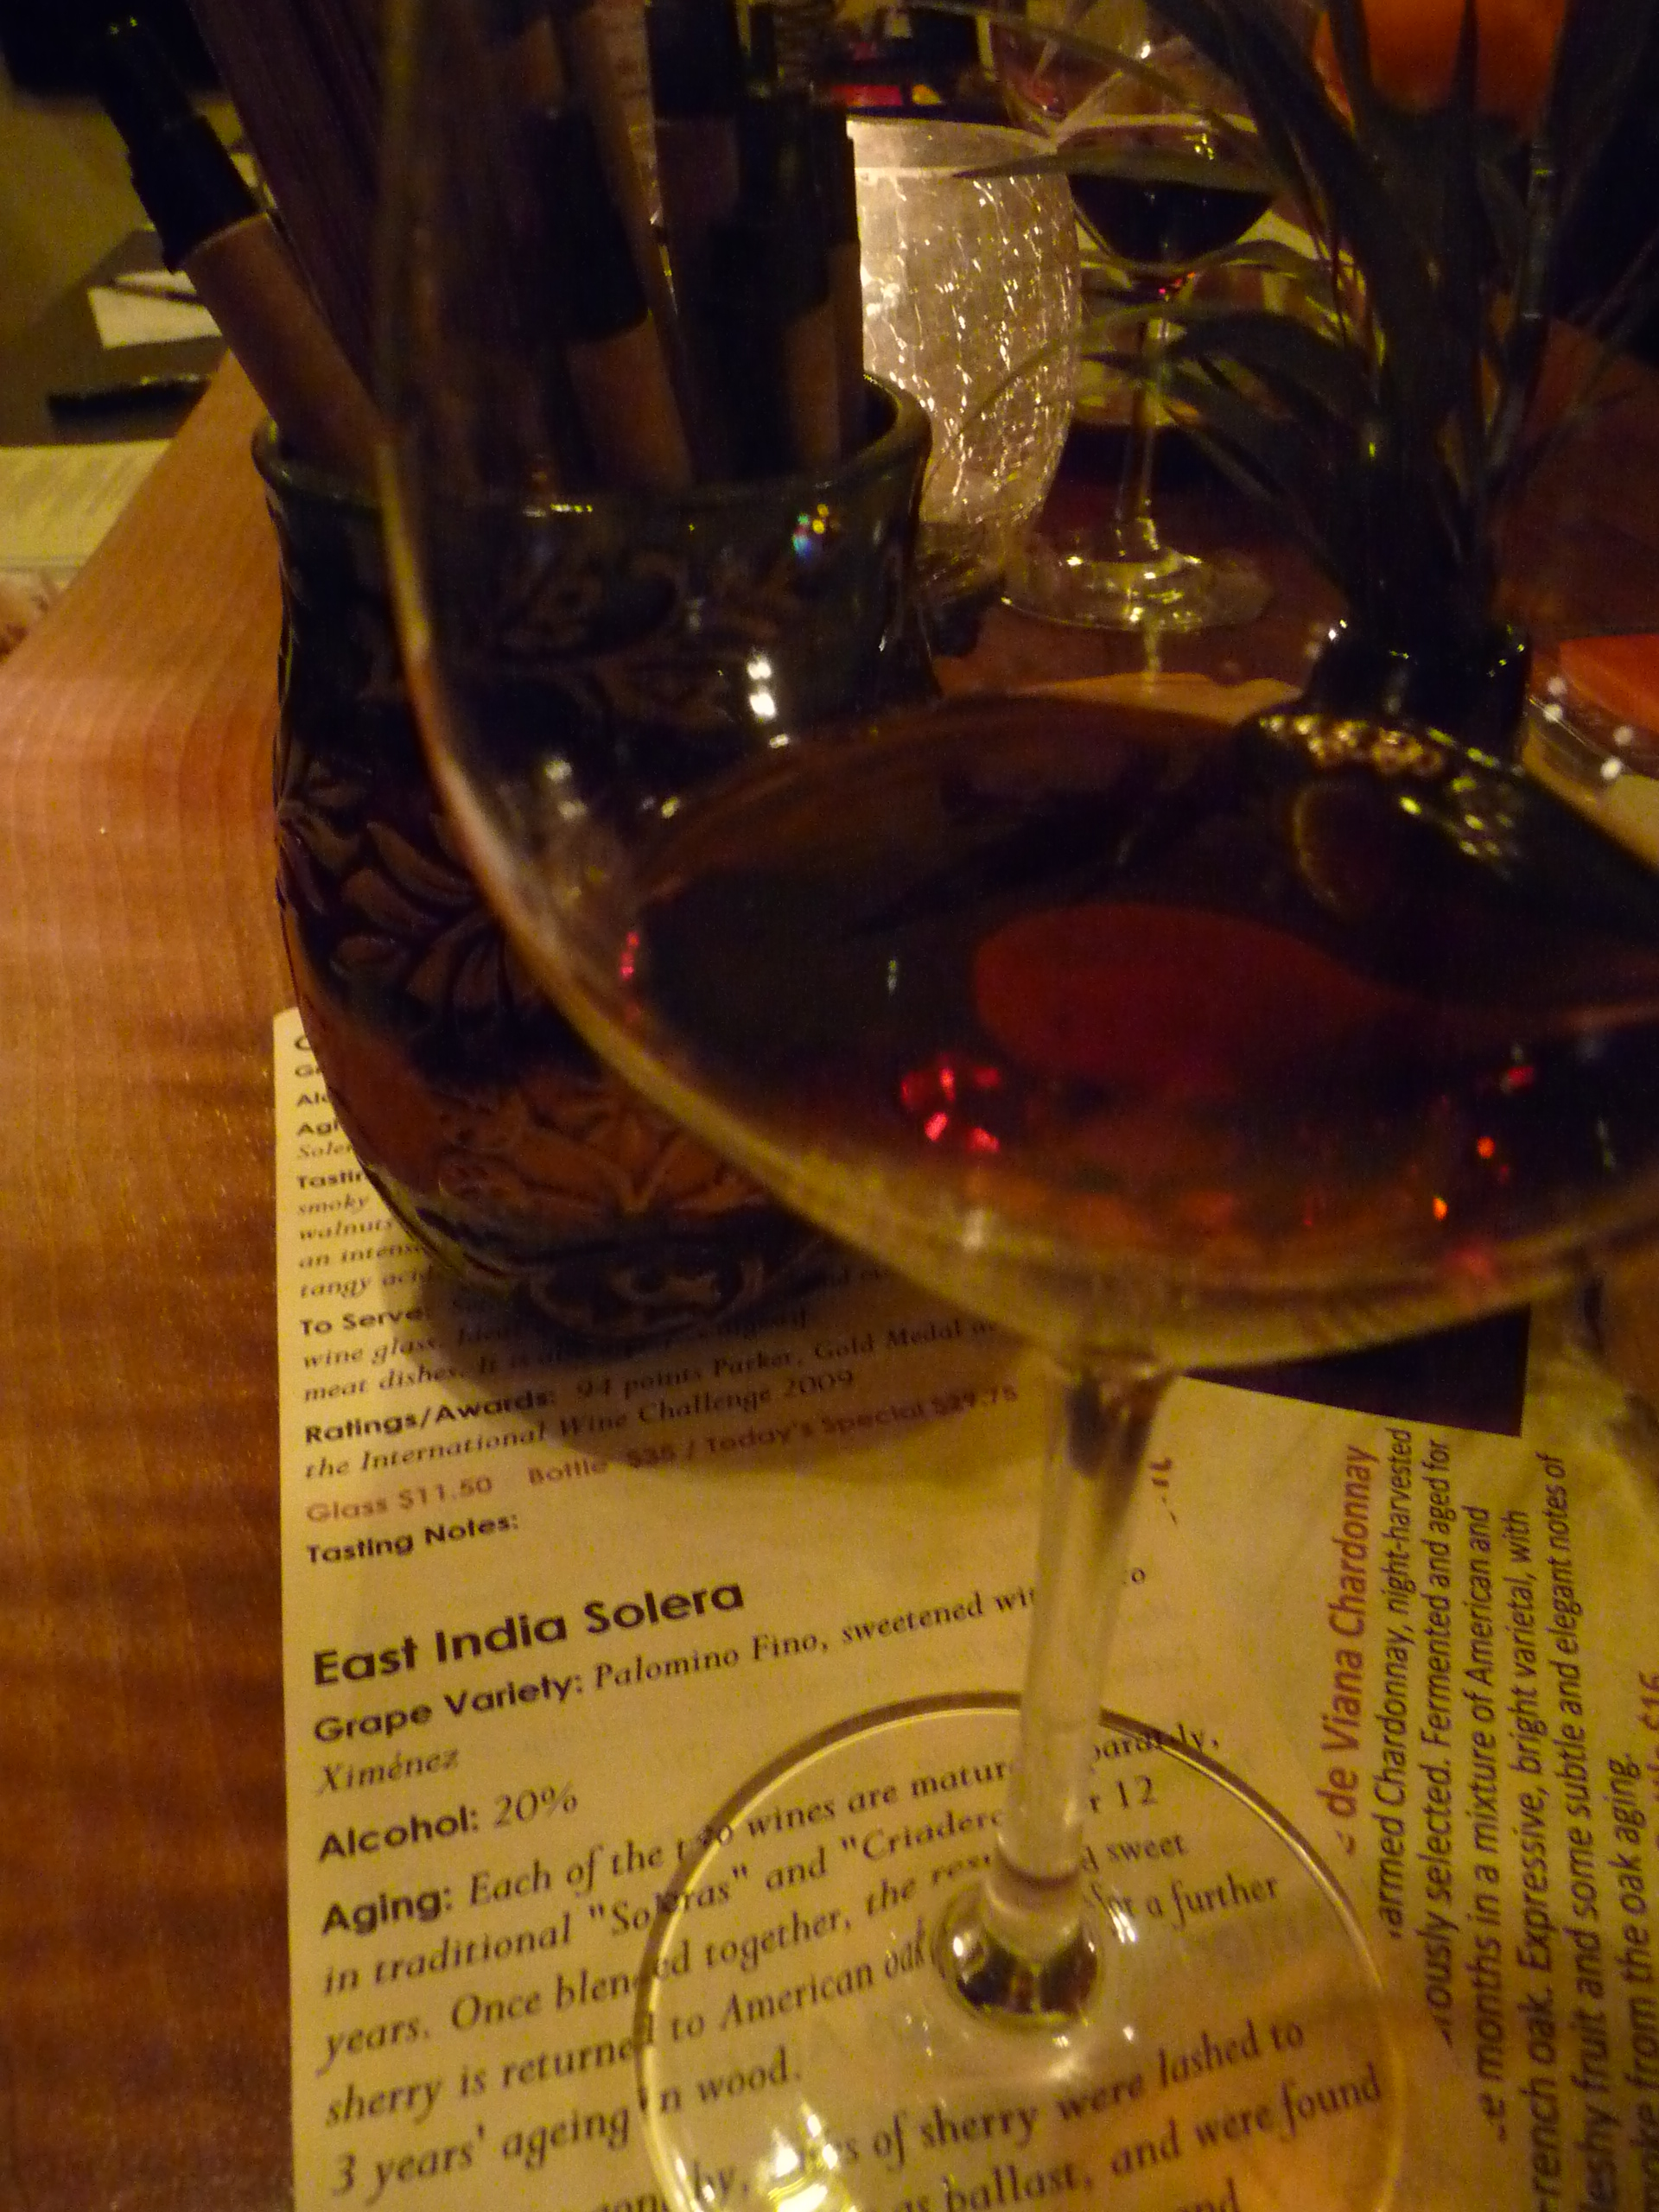 The darkest of the Sherries poured at Emanar's anniver-sherry, this East India Solera was aged a total of 15 years and is deceptively sippable